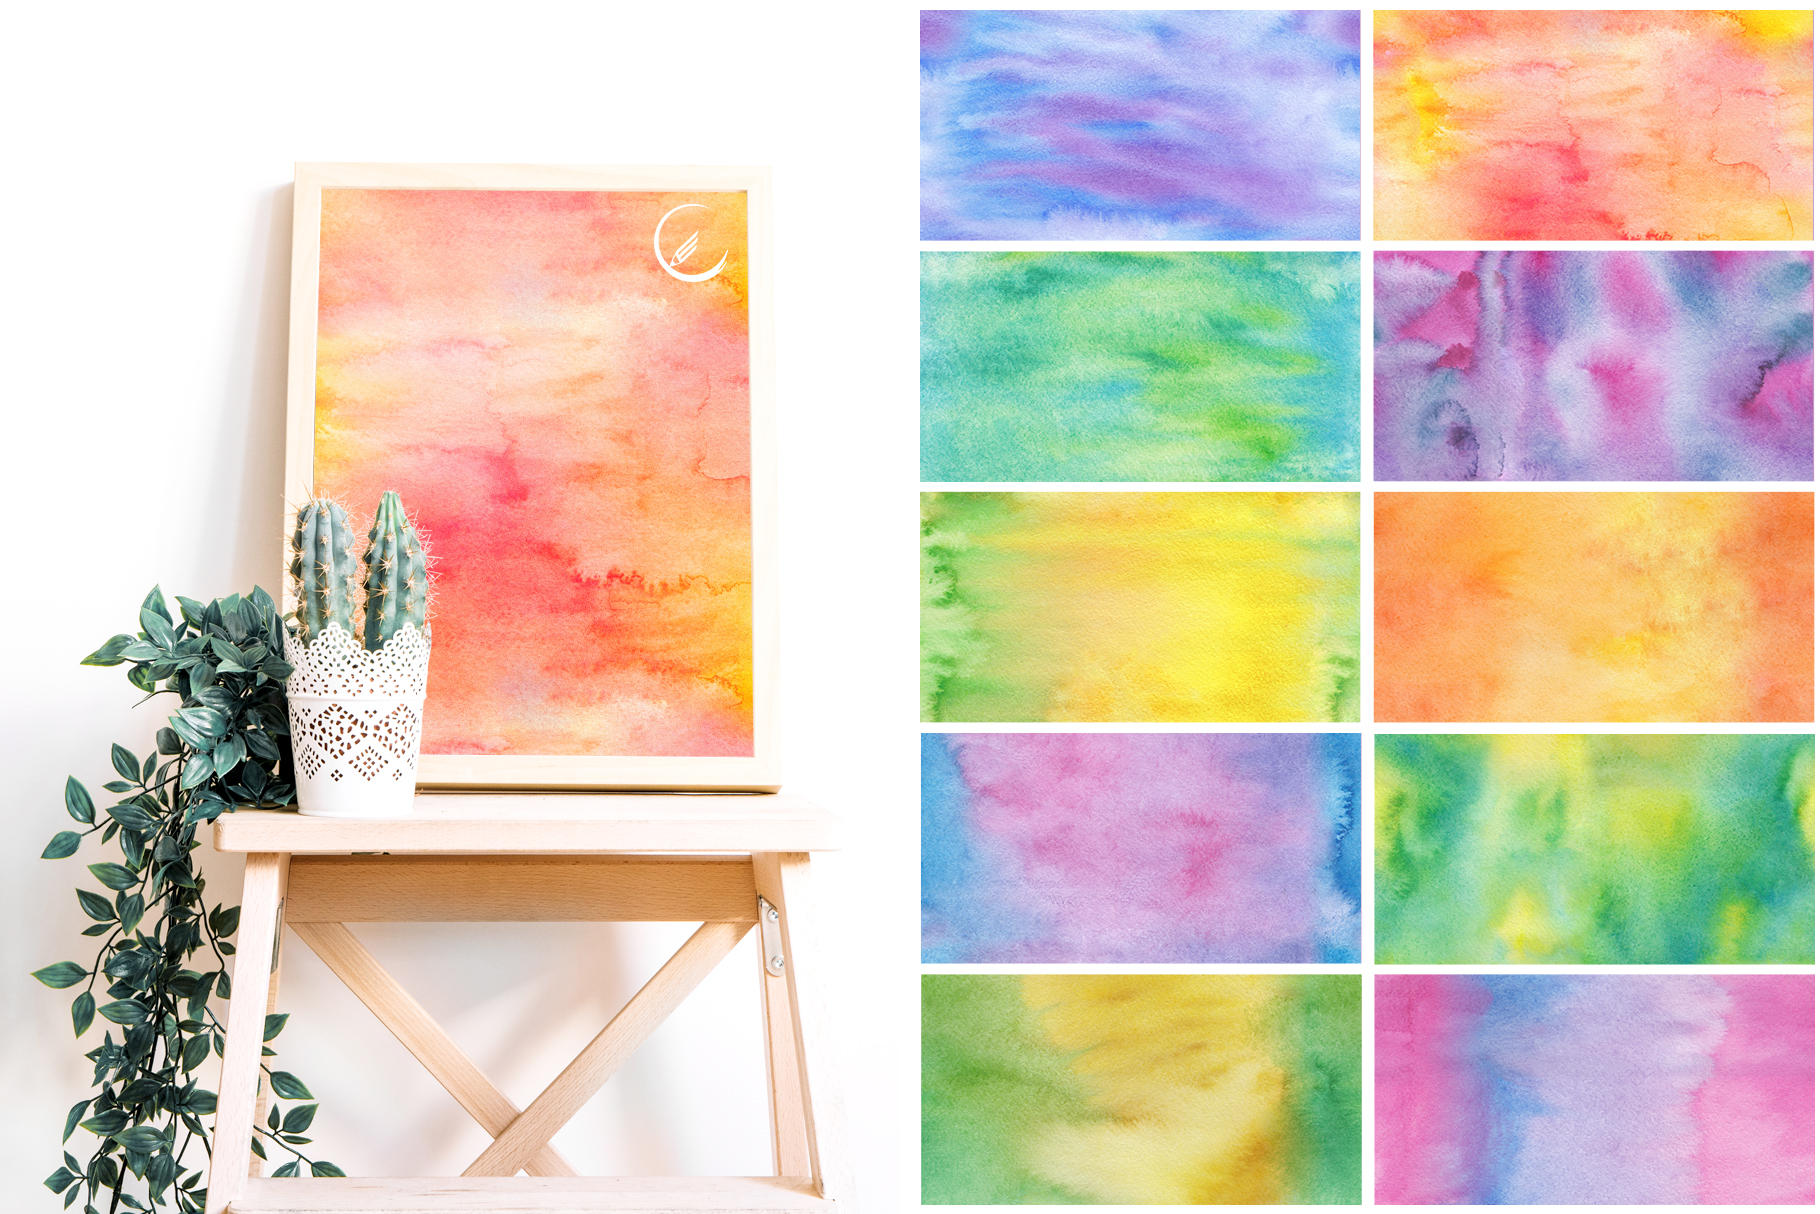 Watercolor Hand Drawn Seamless Textures example image 2